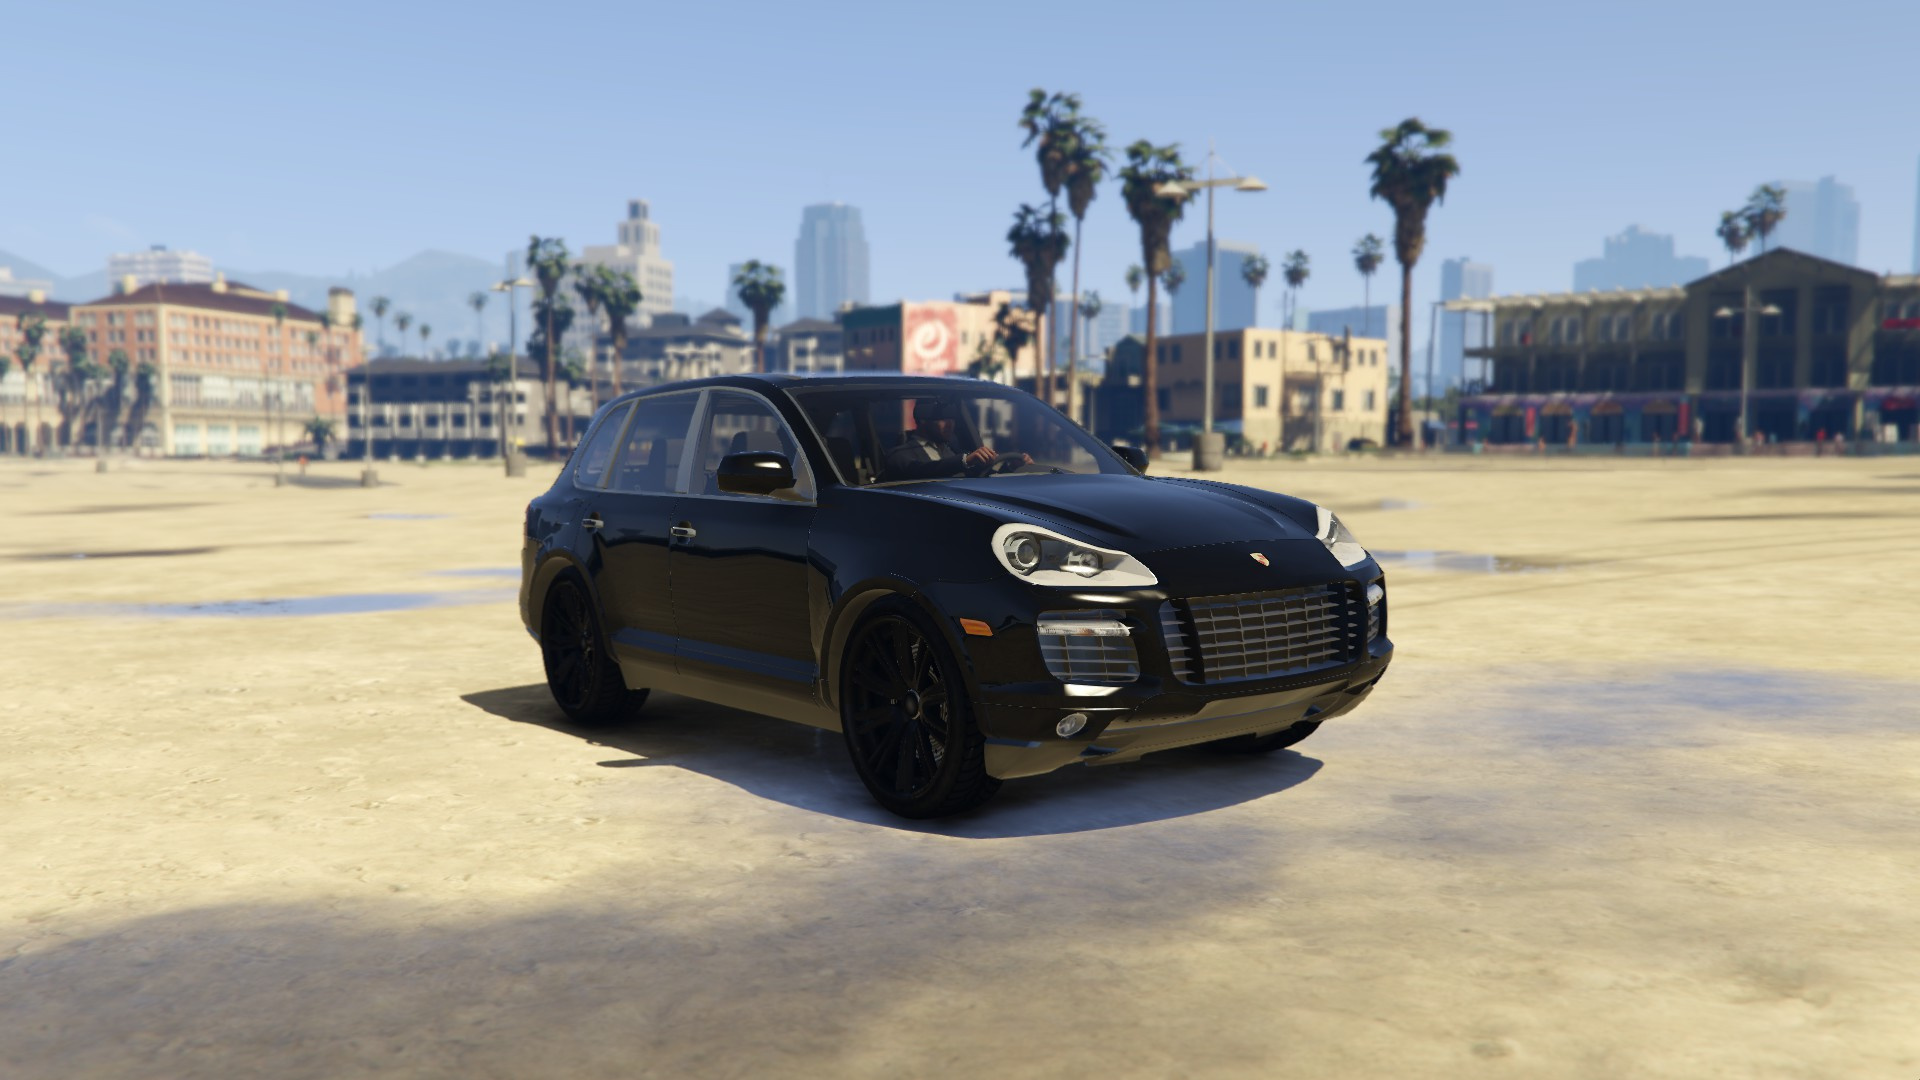 2009 porsche cayenne turbo s gta5. Black Bedroom Furniture Sets. Home Design Ideas